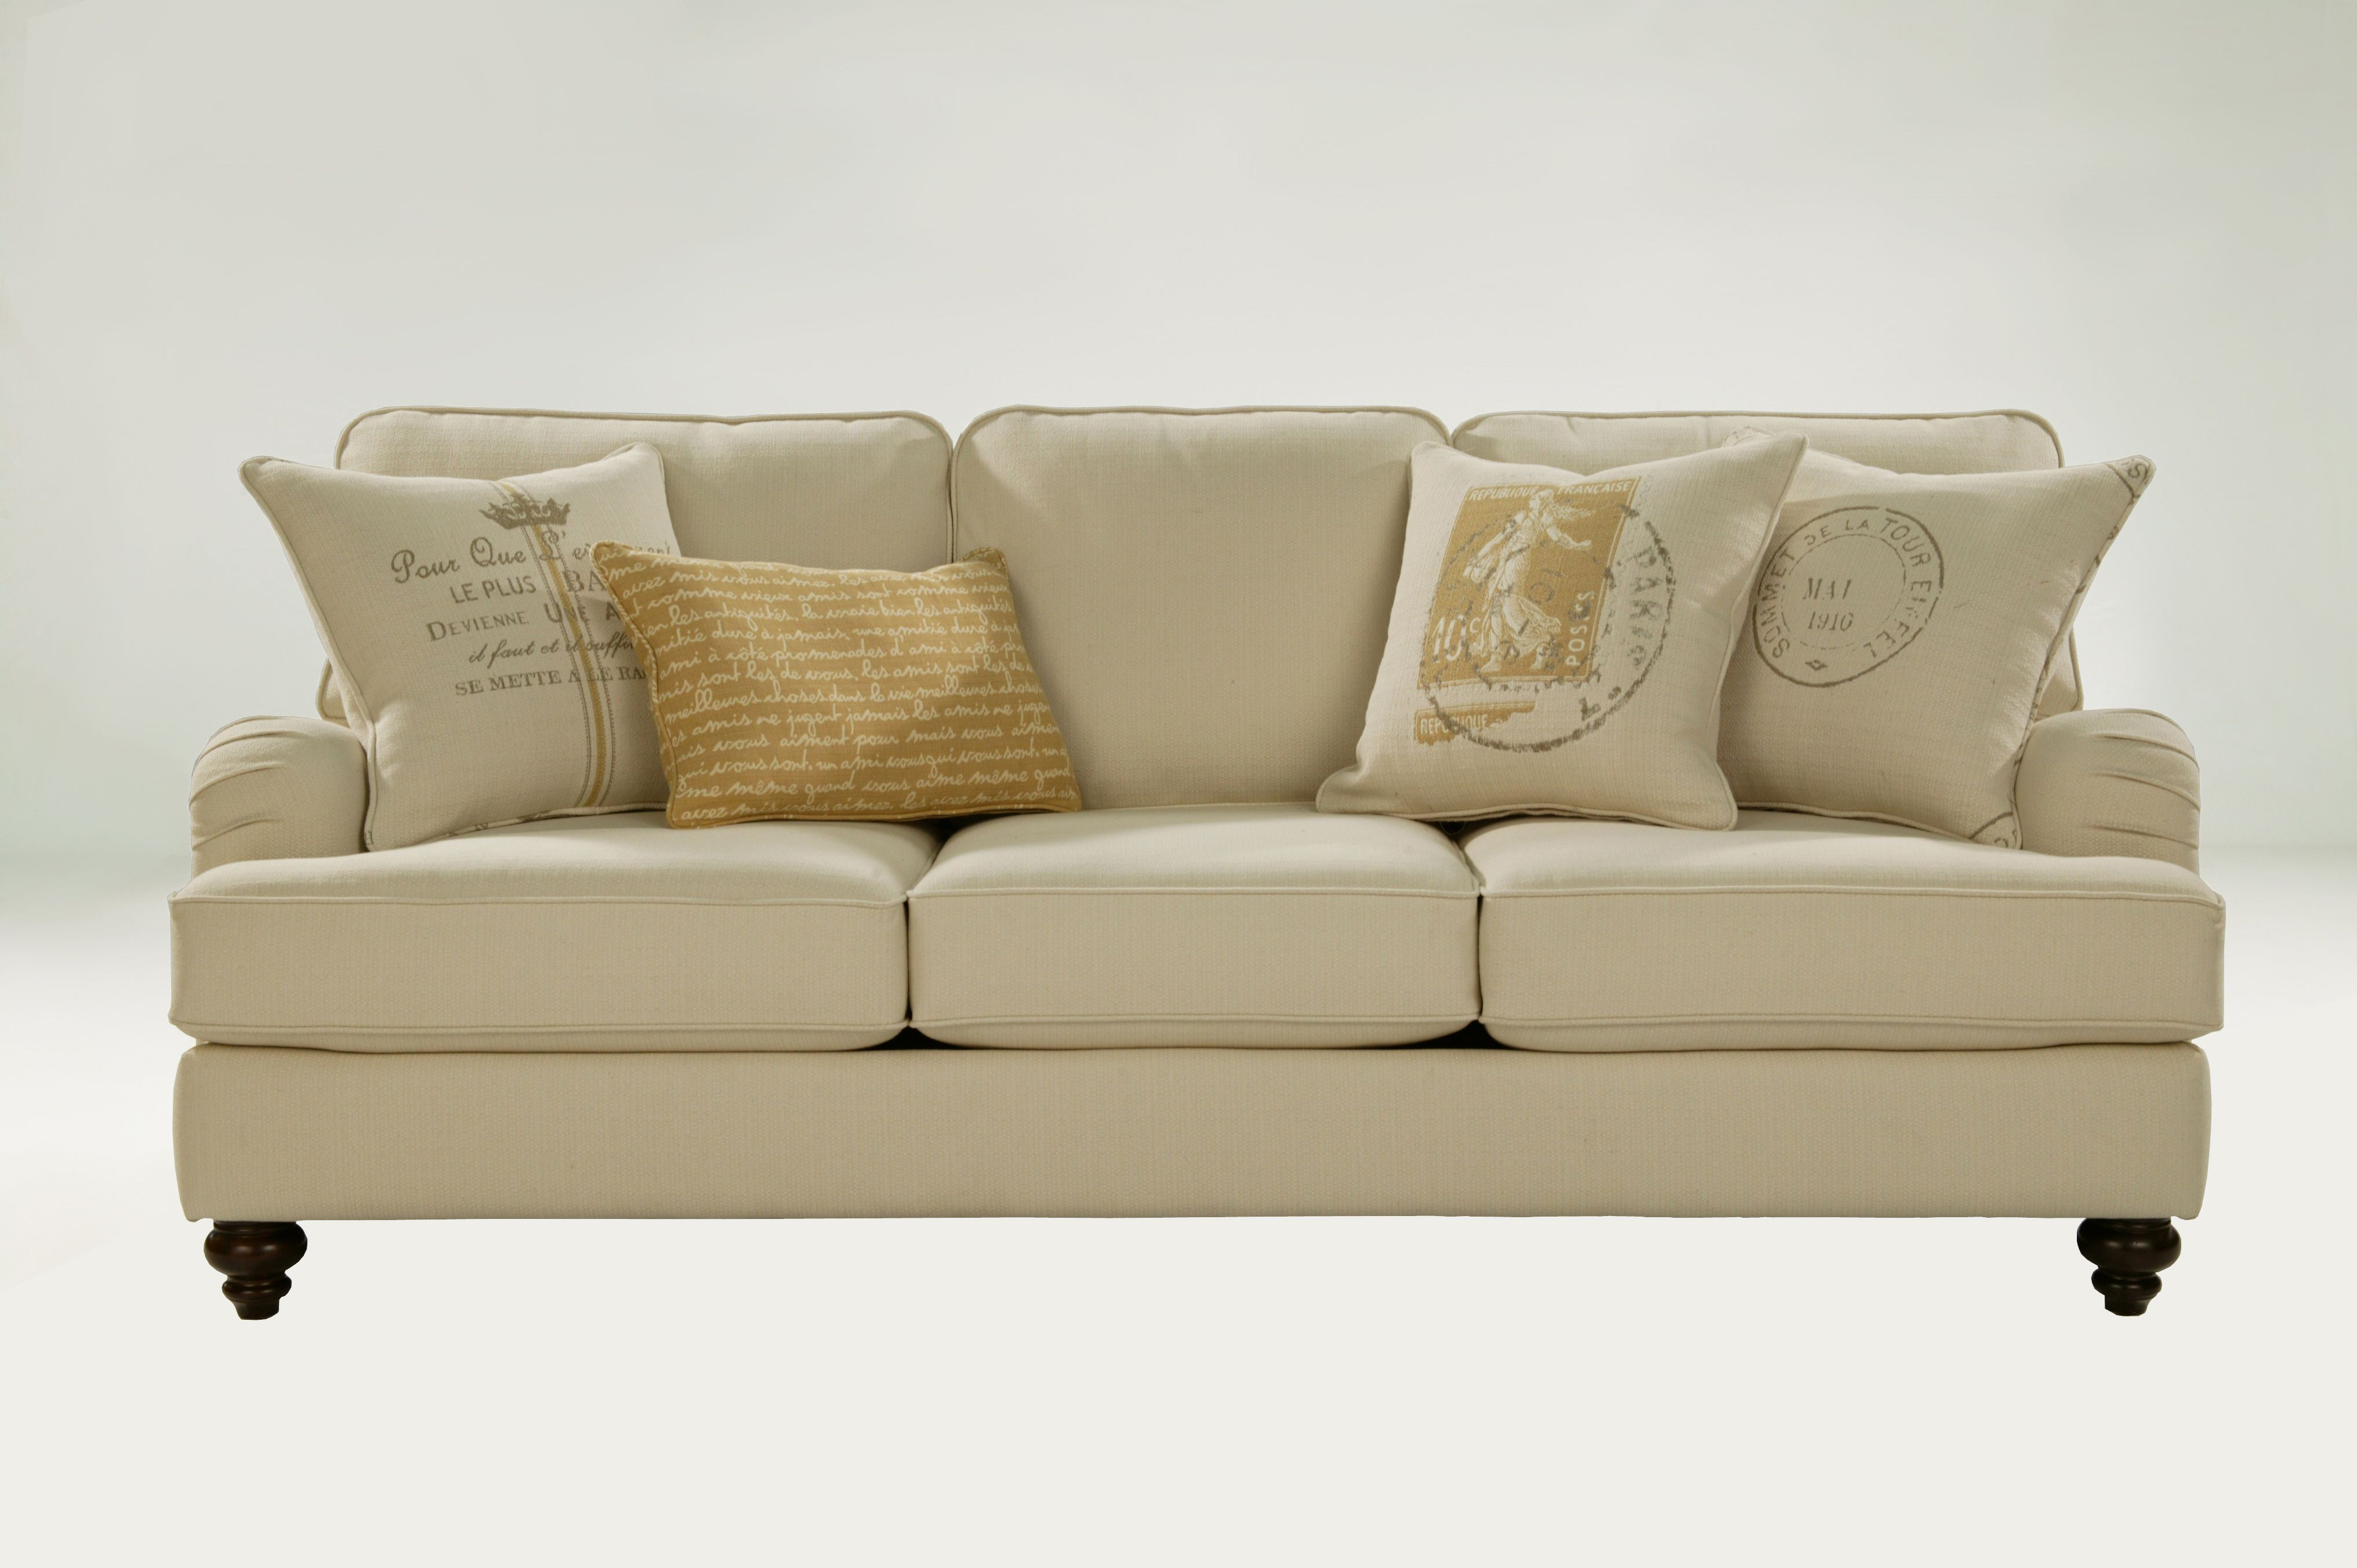 "Robert Michael ""Chateau"" sofa redecorating Pinterest"